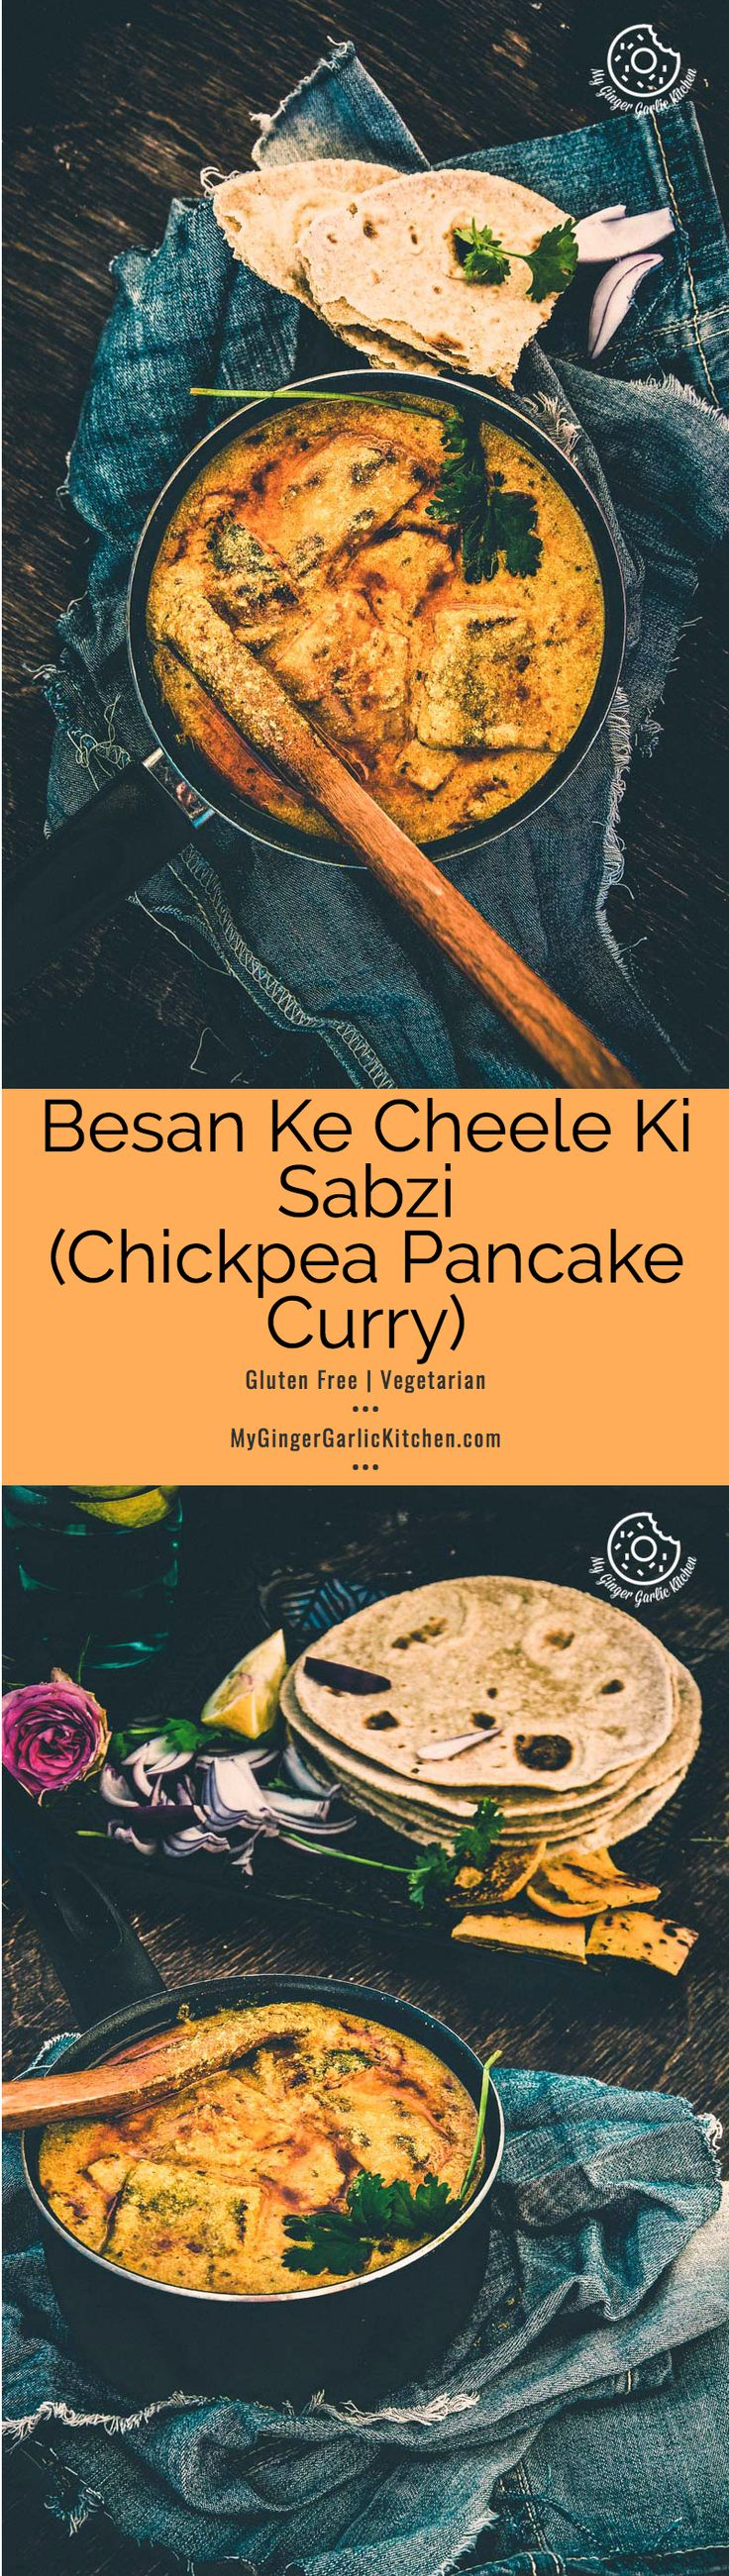 Rajasthani #Besan Ke Cheele Ki Sabzi | Chickpea Pancake Curry is a delicious and exotic curry made with #chickpea flour #pancakes.  Later pancakes are cooked in a spicy and tangy yogurt gravy. From mygingergarlickitchen.com